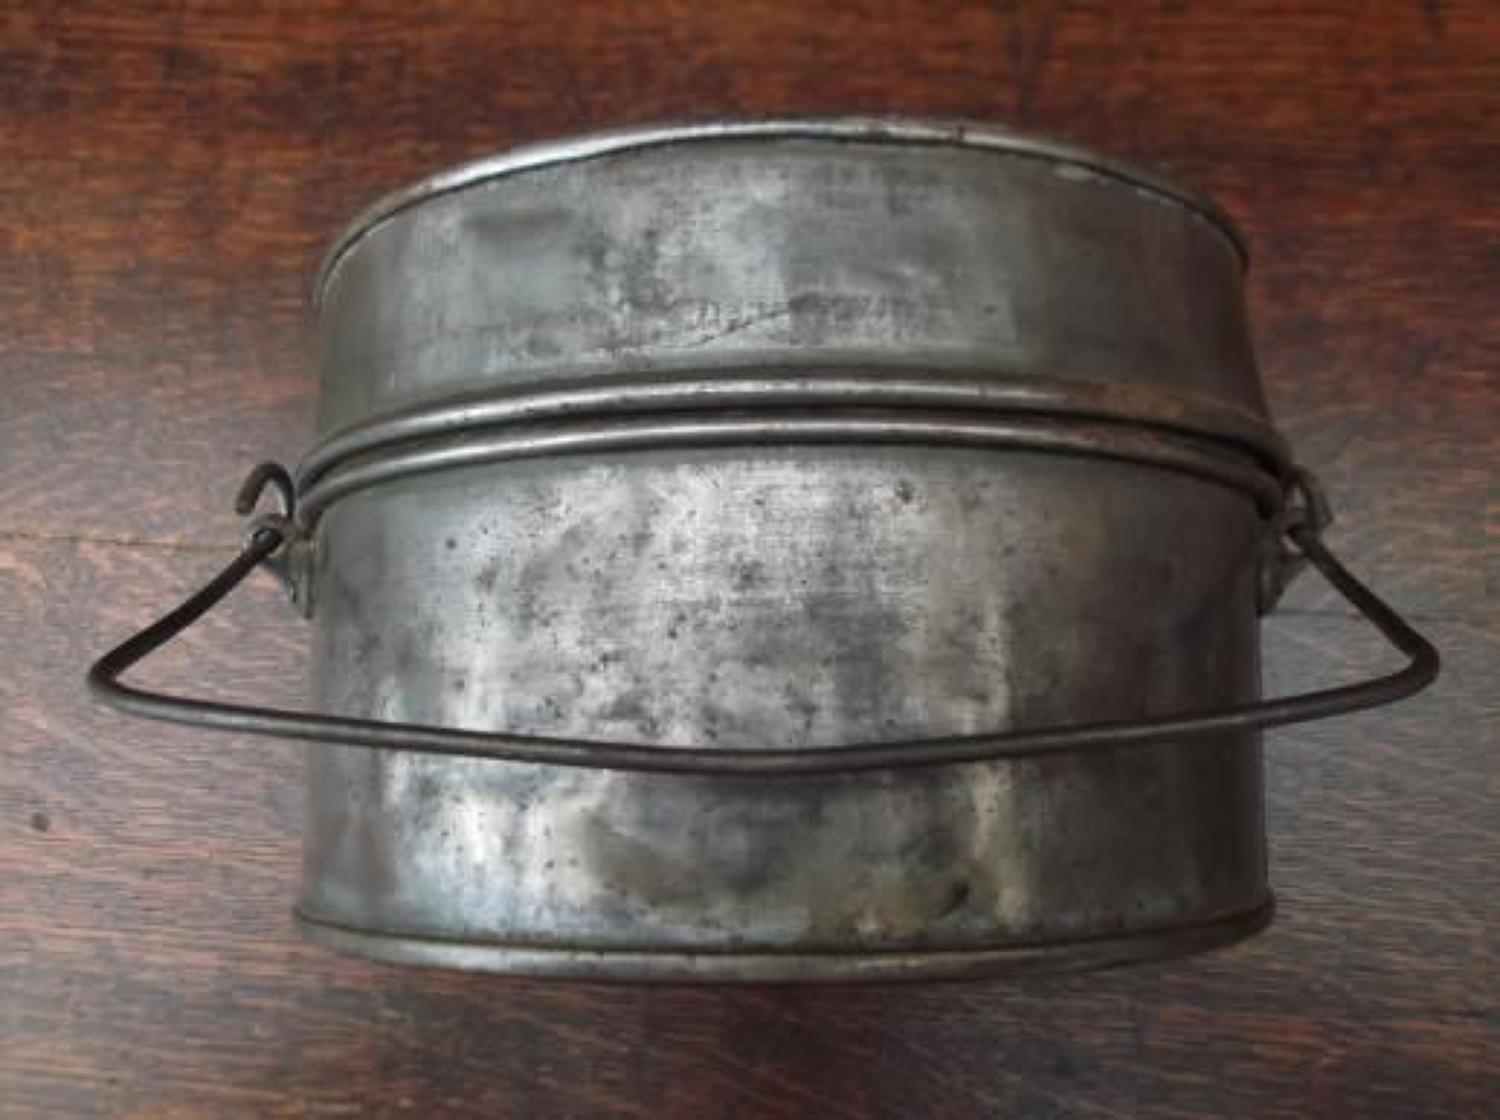 WW1 PATTERN BRITISH INFANTRY D SHAPE MESS TINS